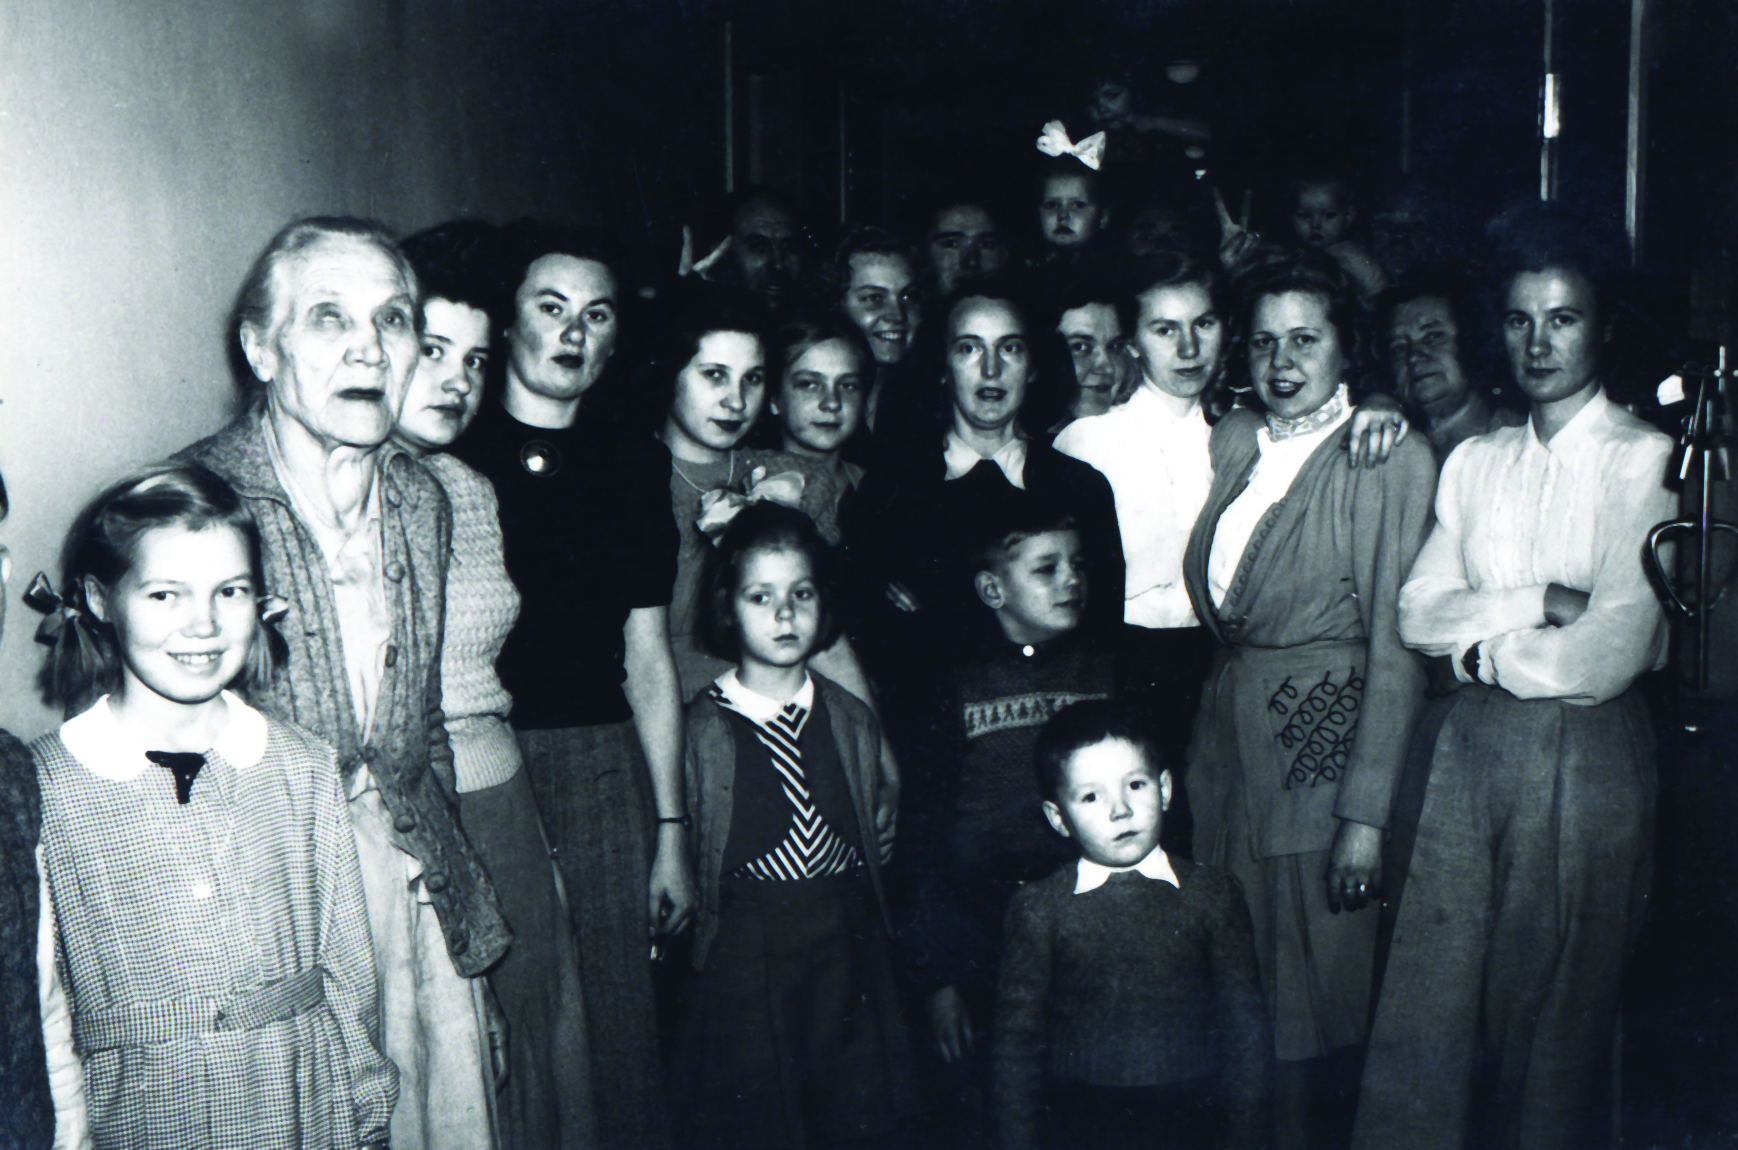 A black and white photo of women sitting and standing looking at the camera